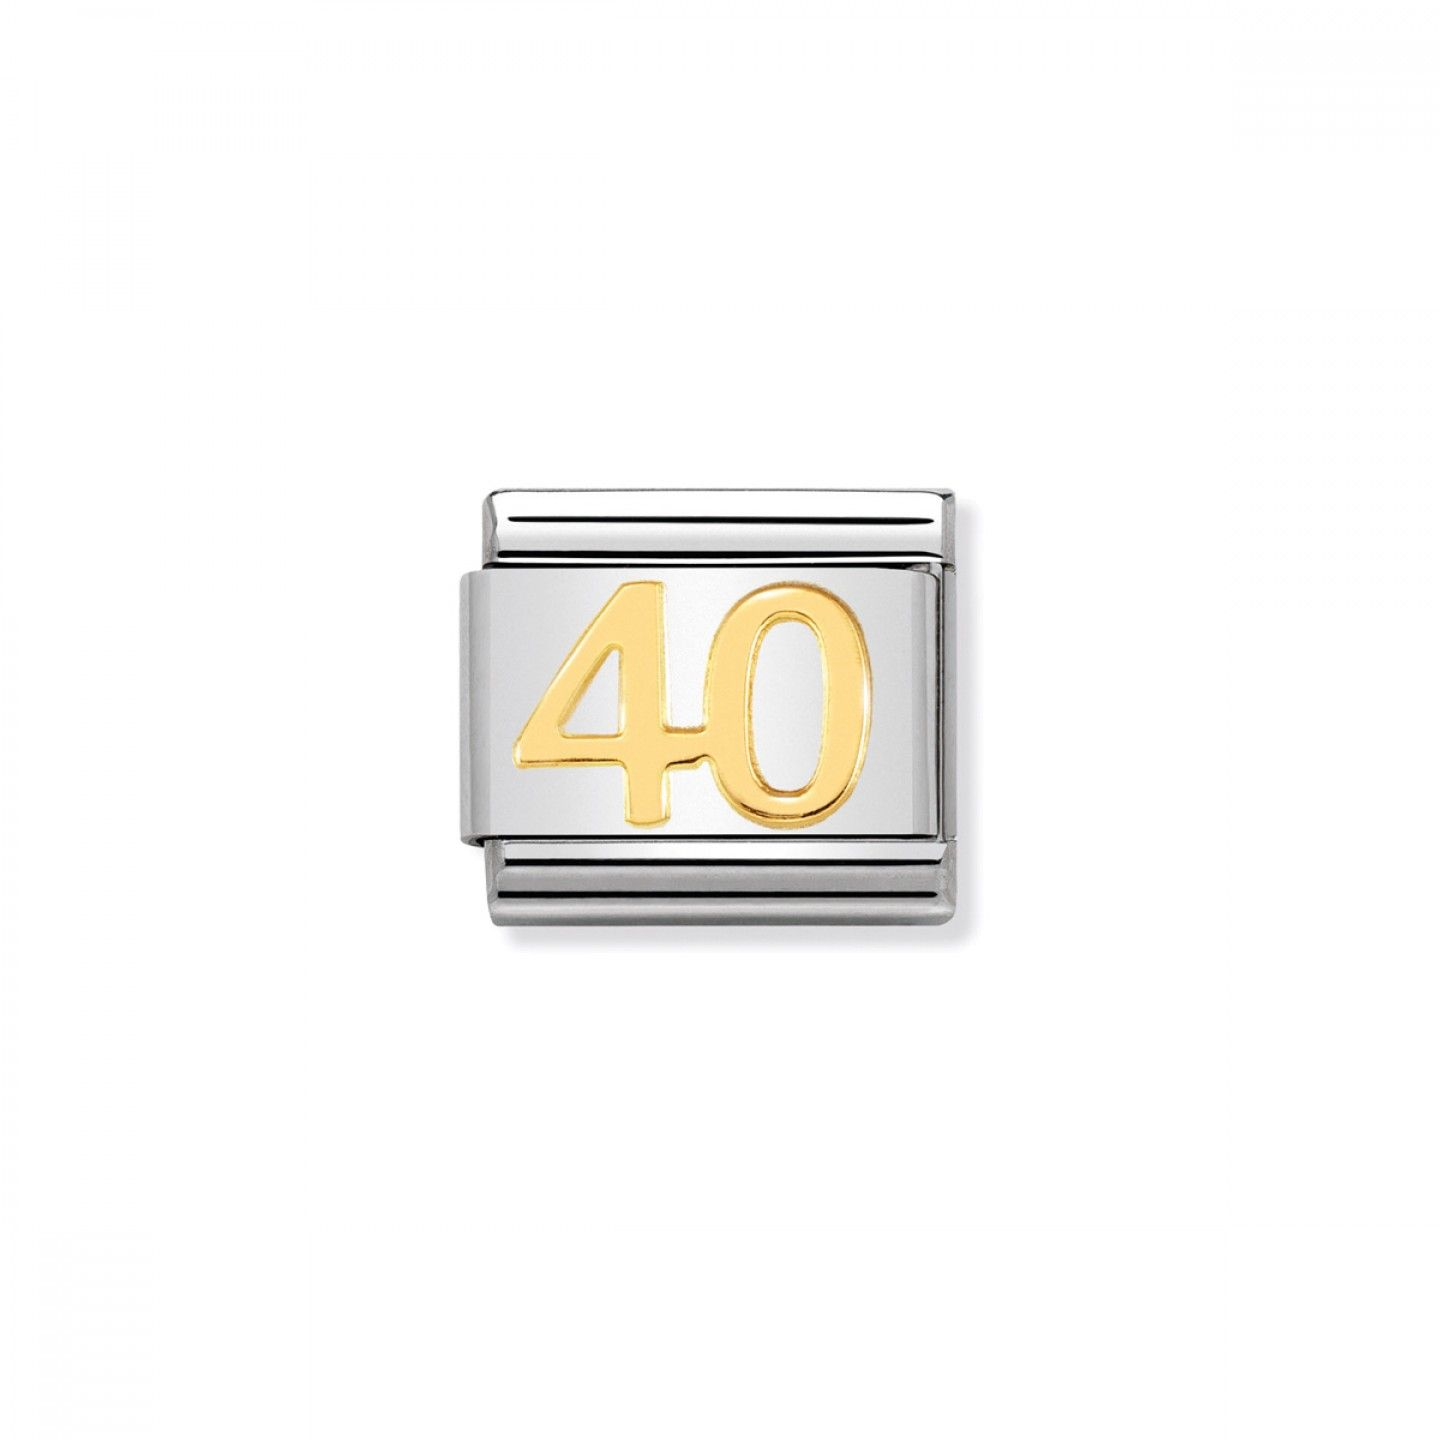 Charm Link NOMINATION, Ouro 18K, Nº40